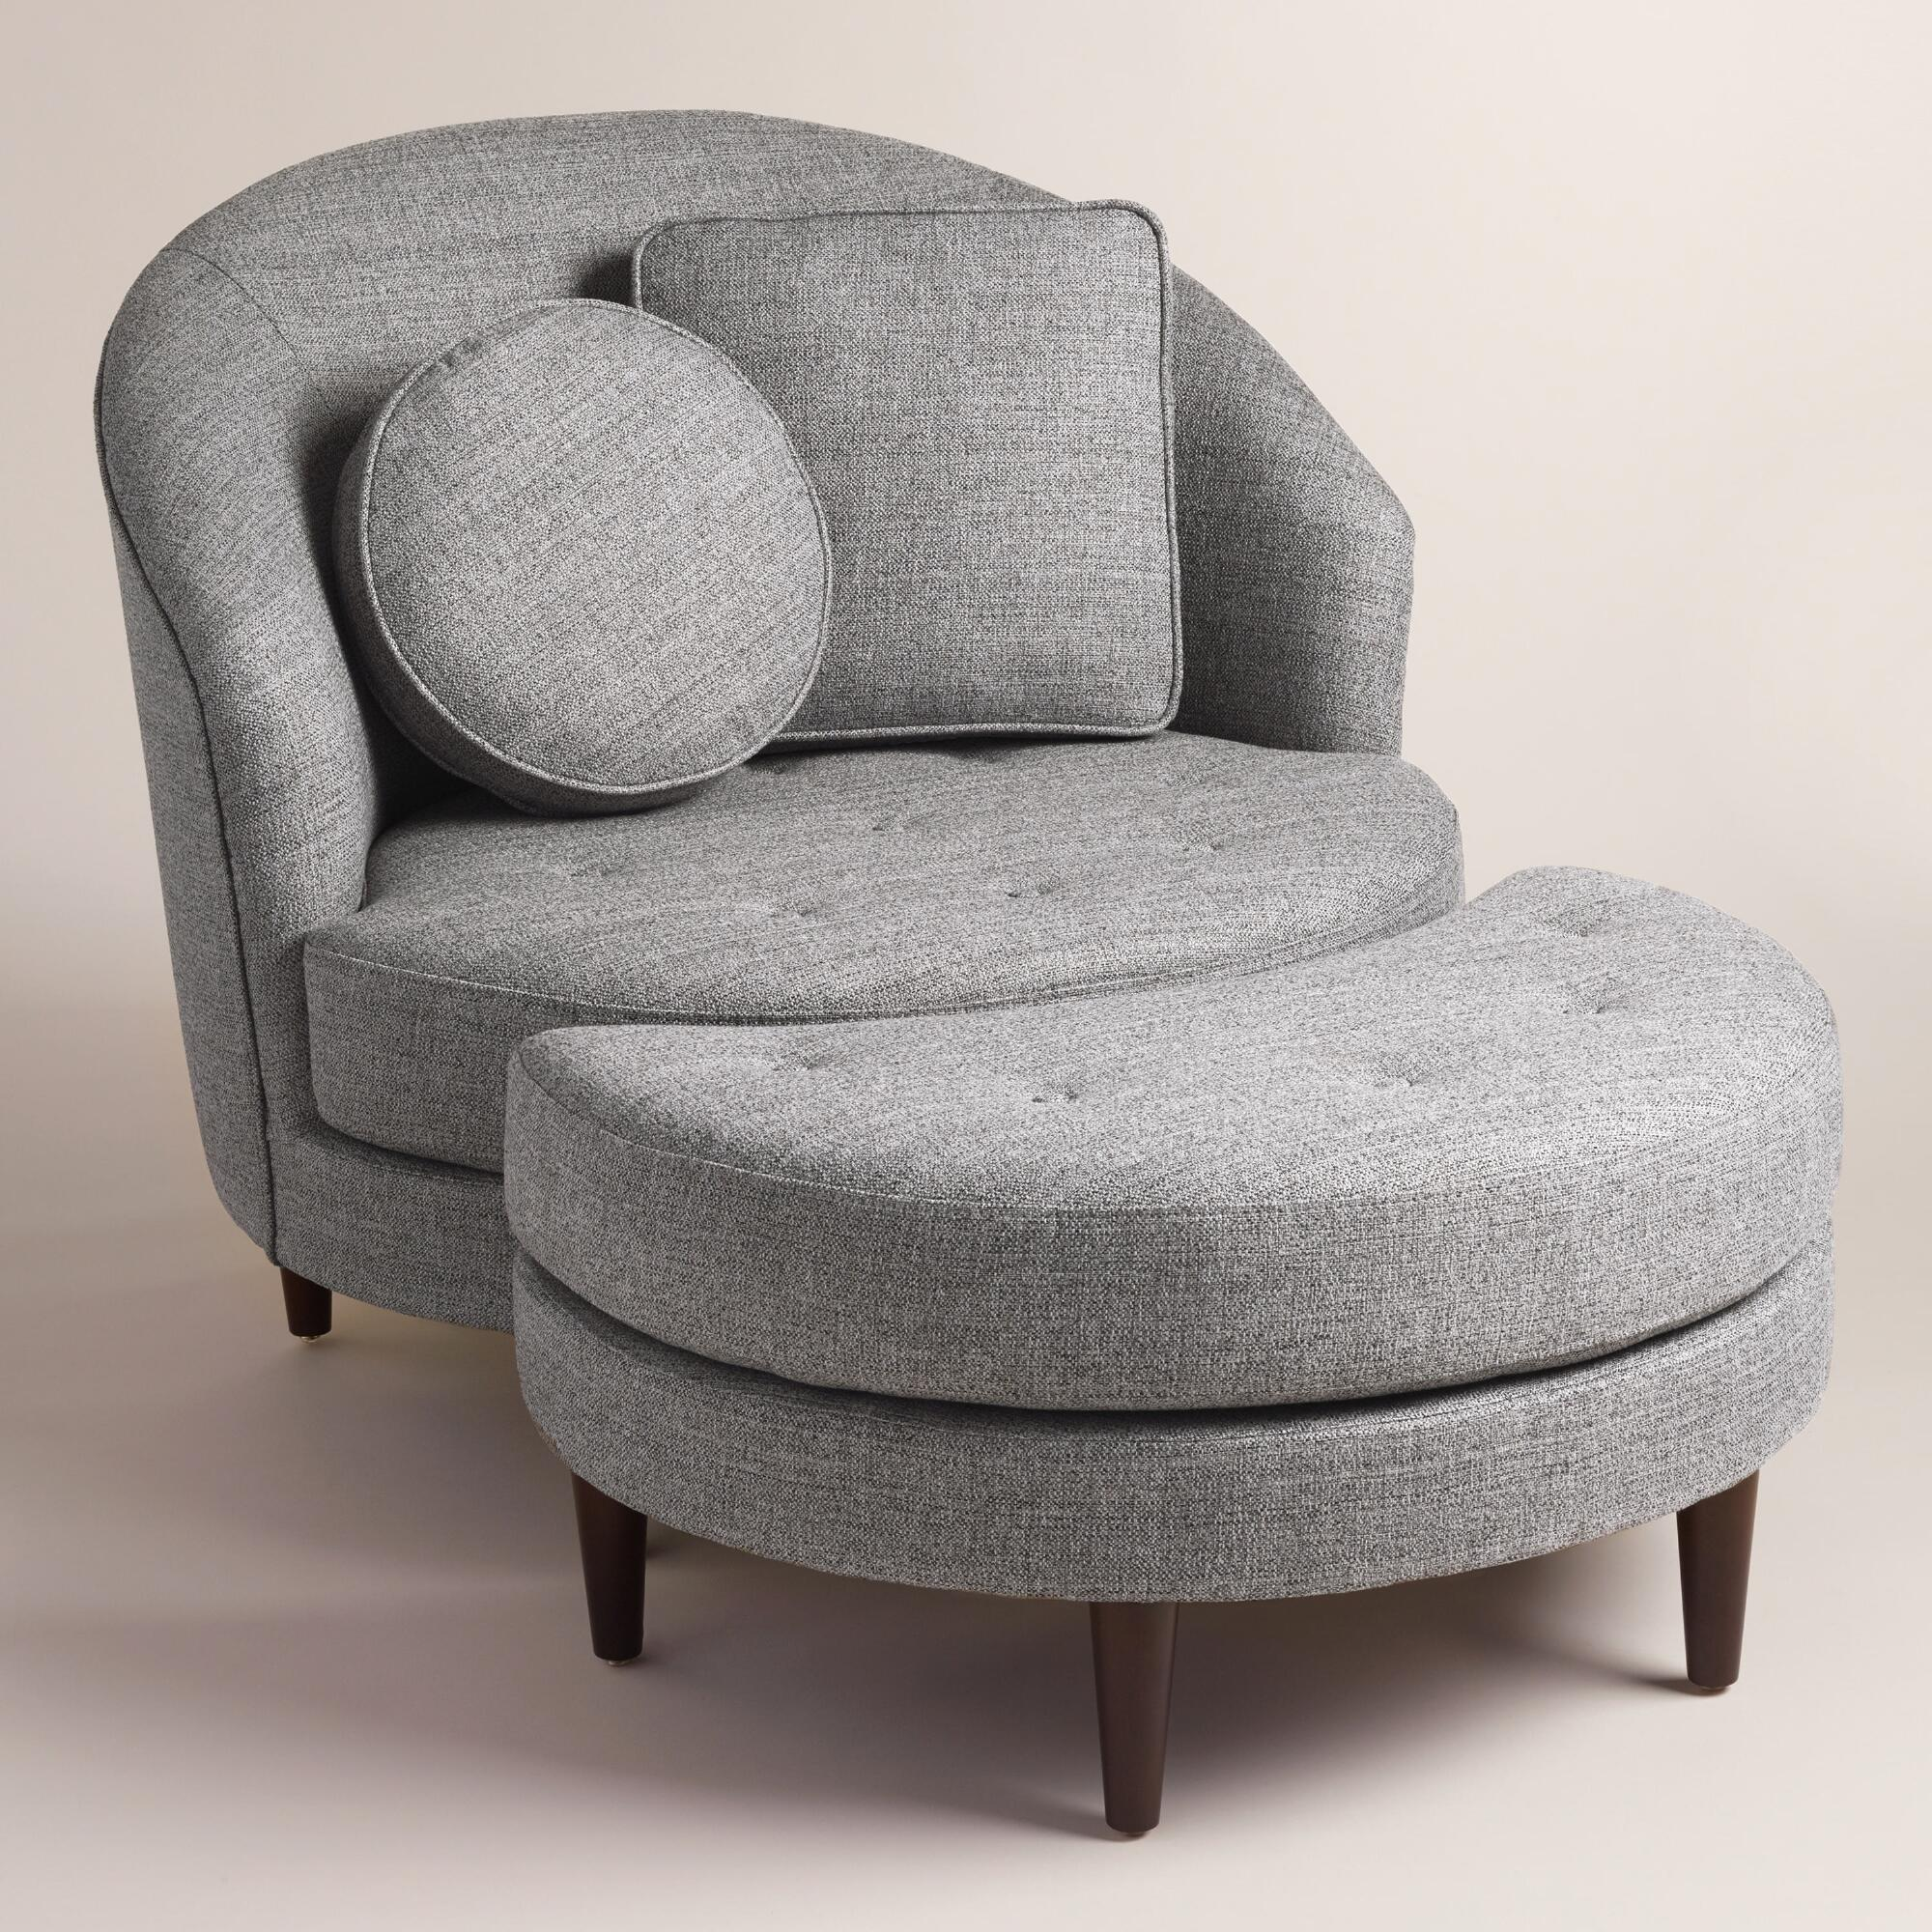 Gray seren round seating collection world market for Round sofa chair living room furniture